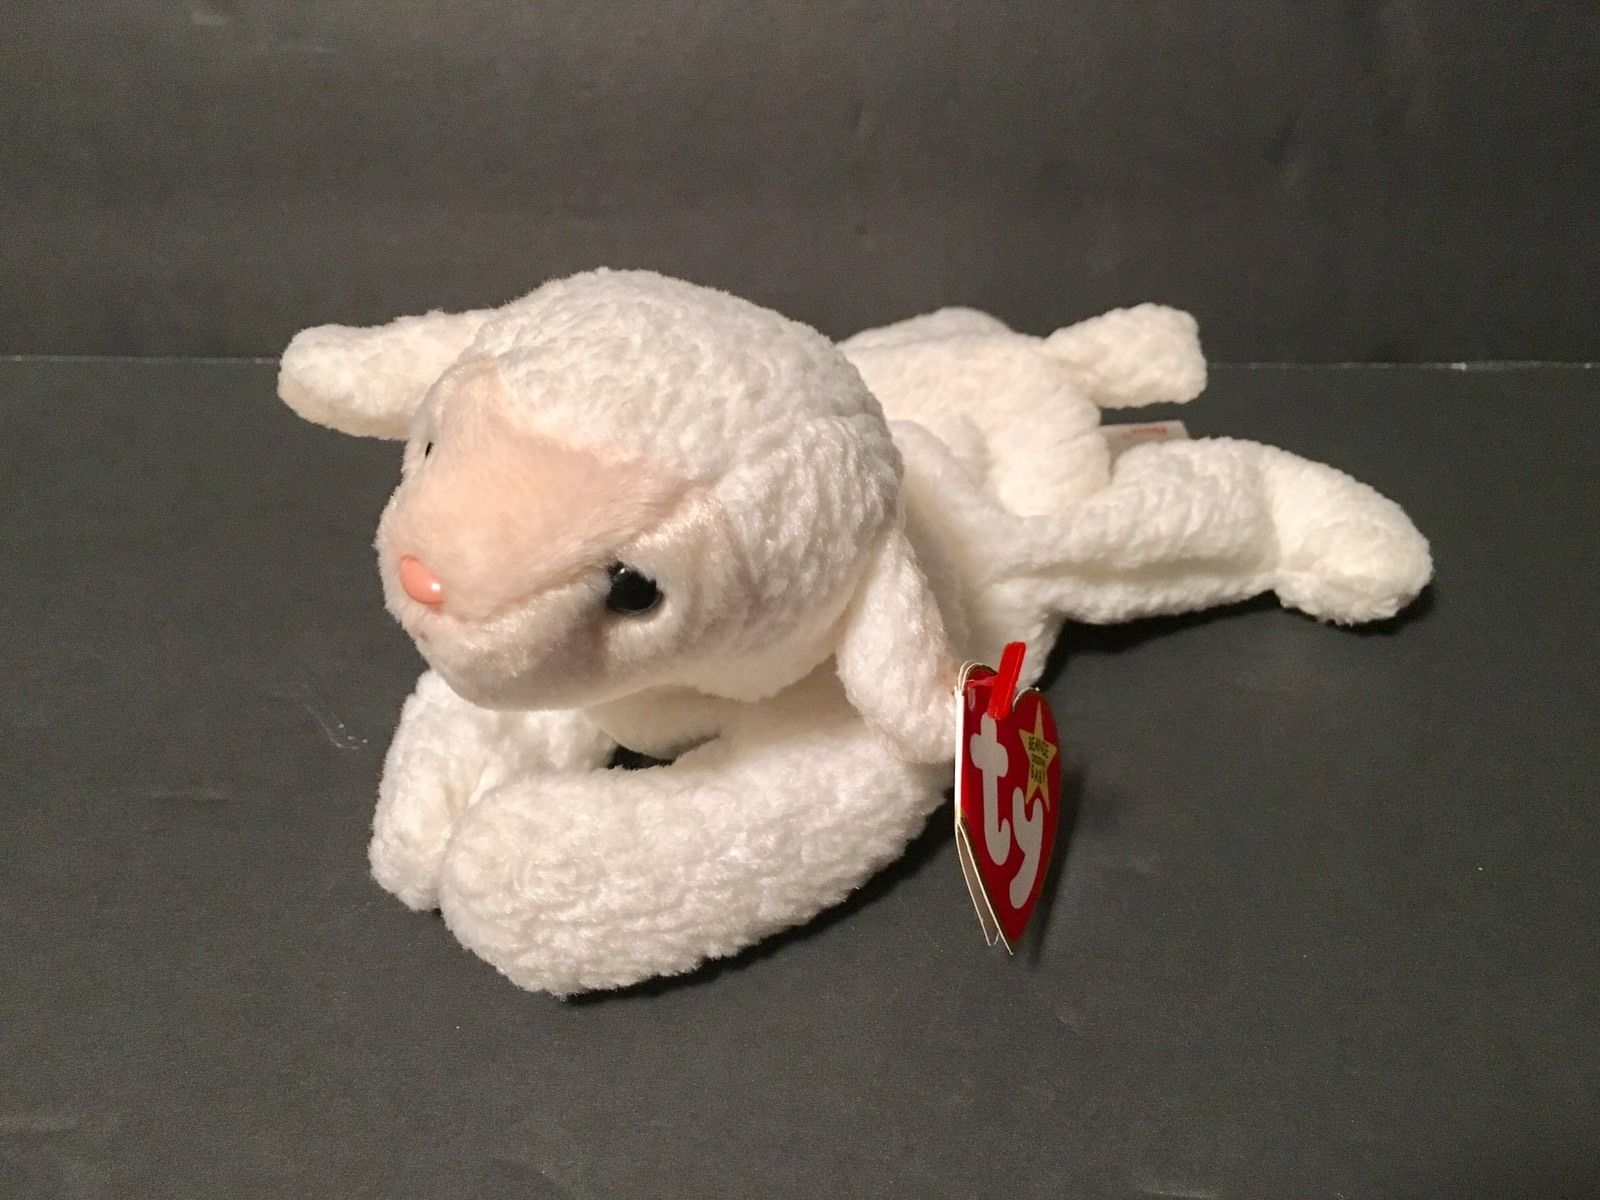 Ty Beanie Babies Plush Beanbag Fleece the Lamb Sheep White Pink Nose